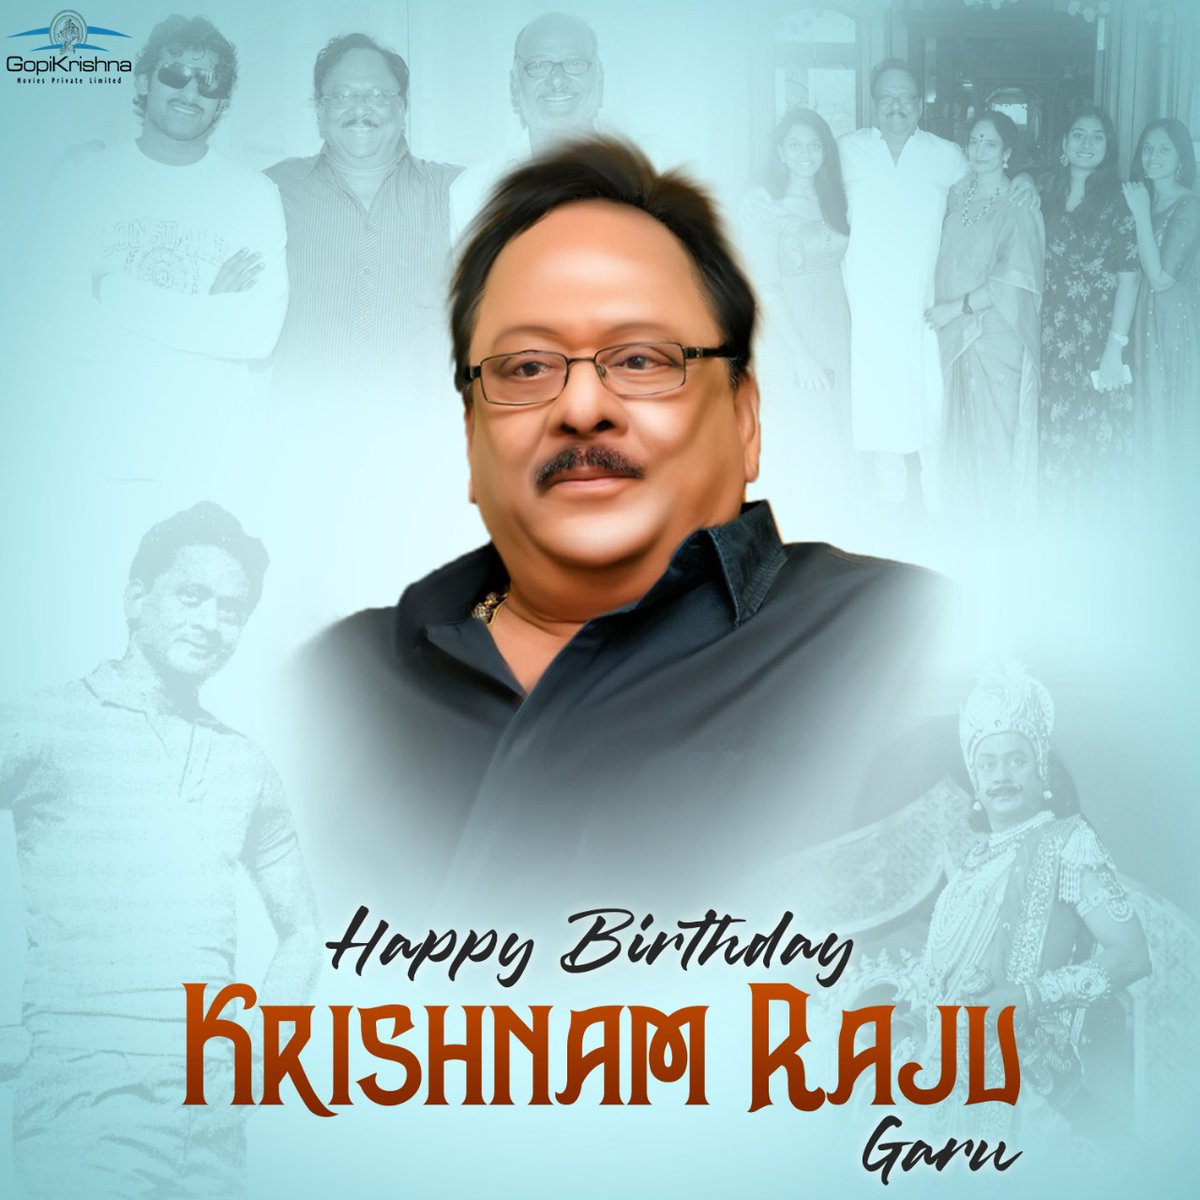 For spearheading a massive production house, for being the leading man of several blockbusters, for setting cinematic benchmarks 🙏 Wishing our Rebel Star @UVKrishnamRaju garu a very Happy Birthday ❤️🎉 #HBDKrishnamRaju